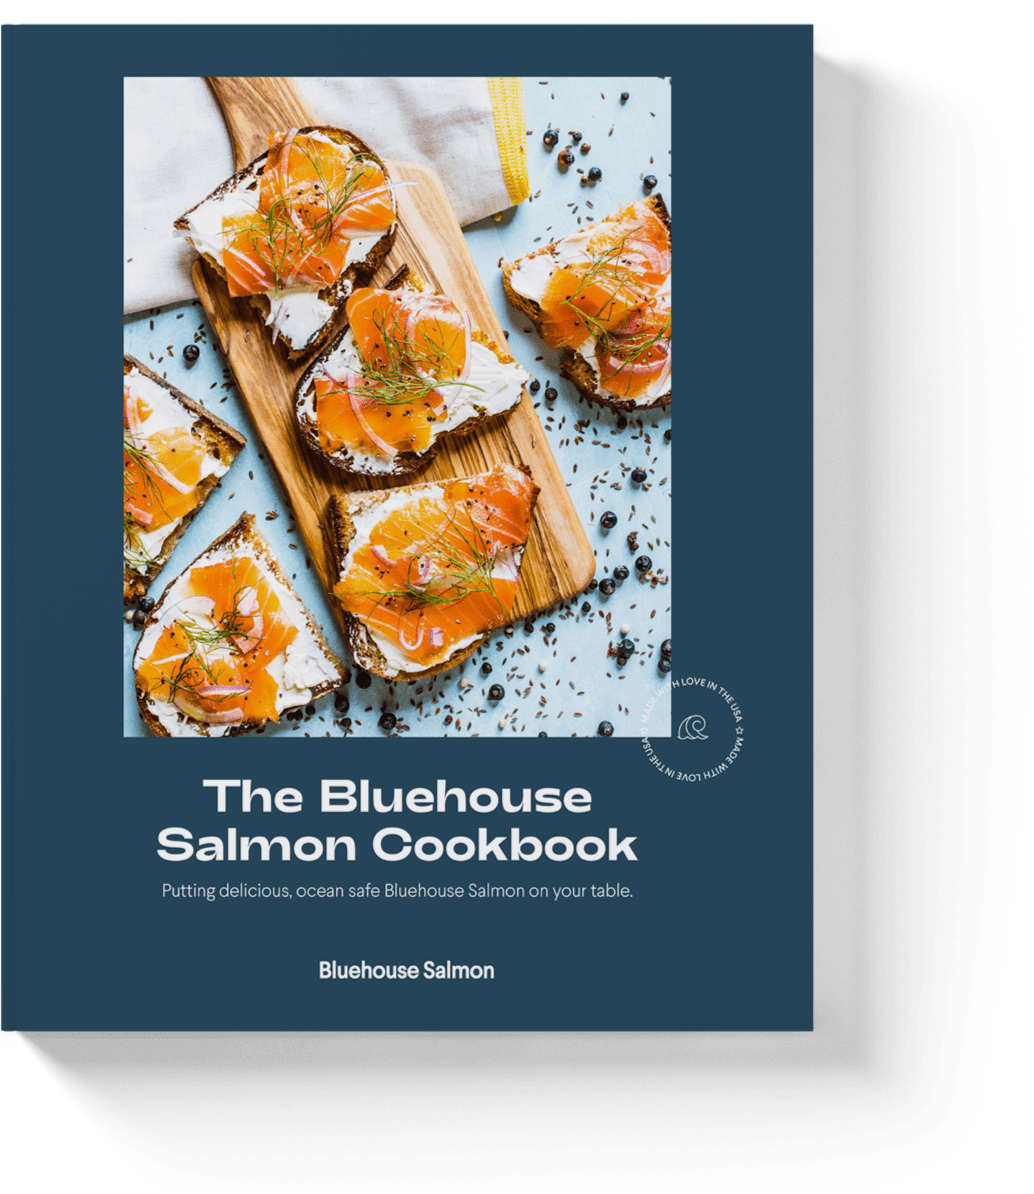 Bluehouse Salmon Cookbook cover